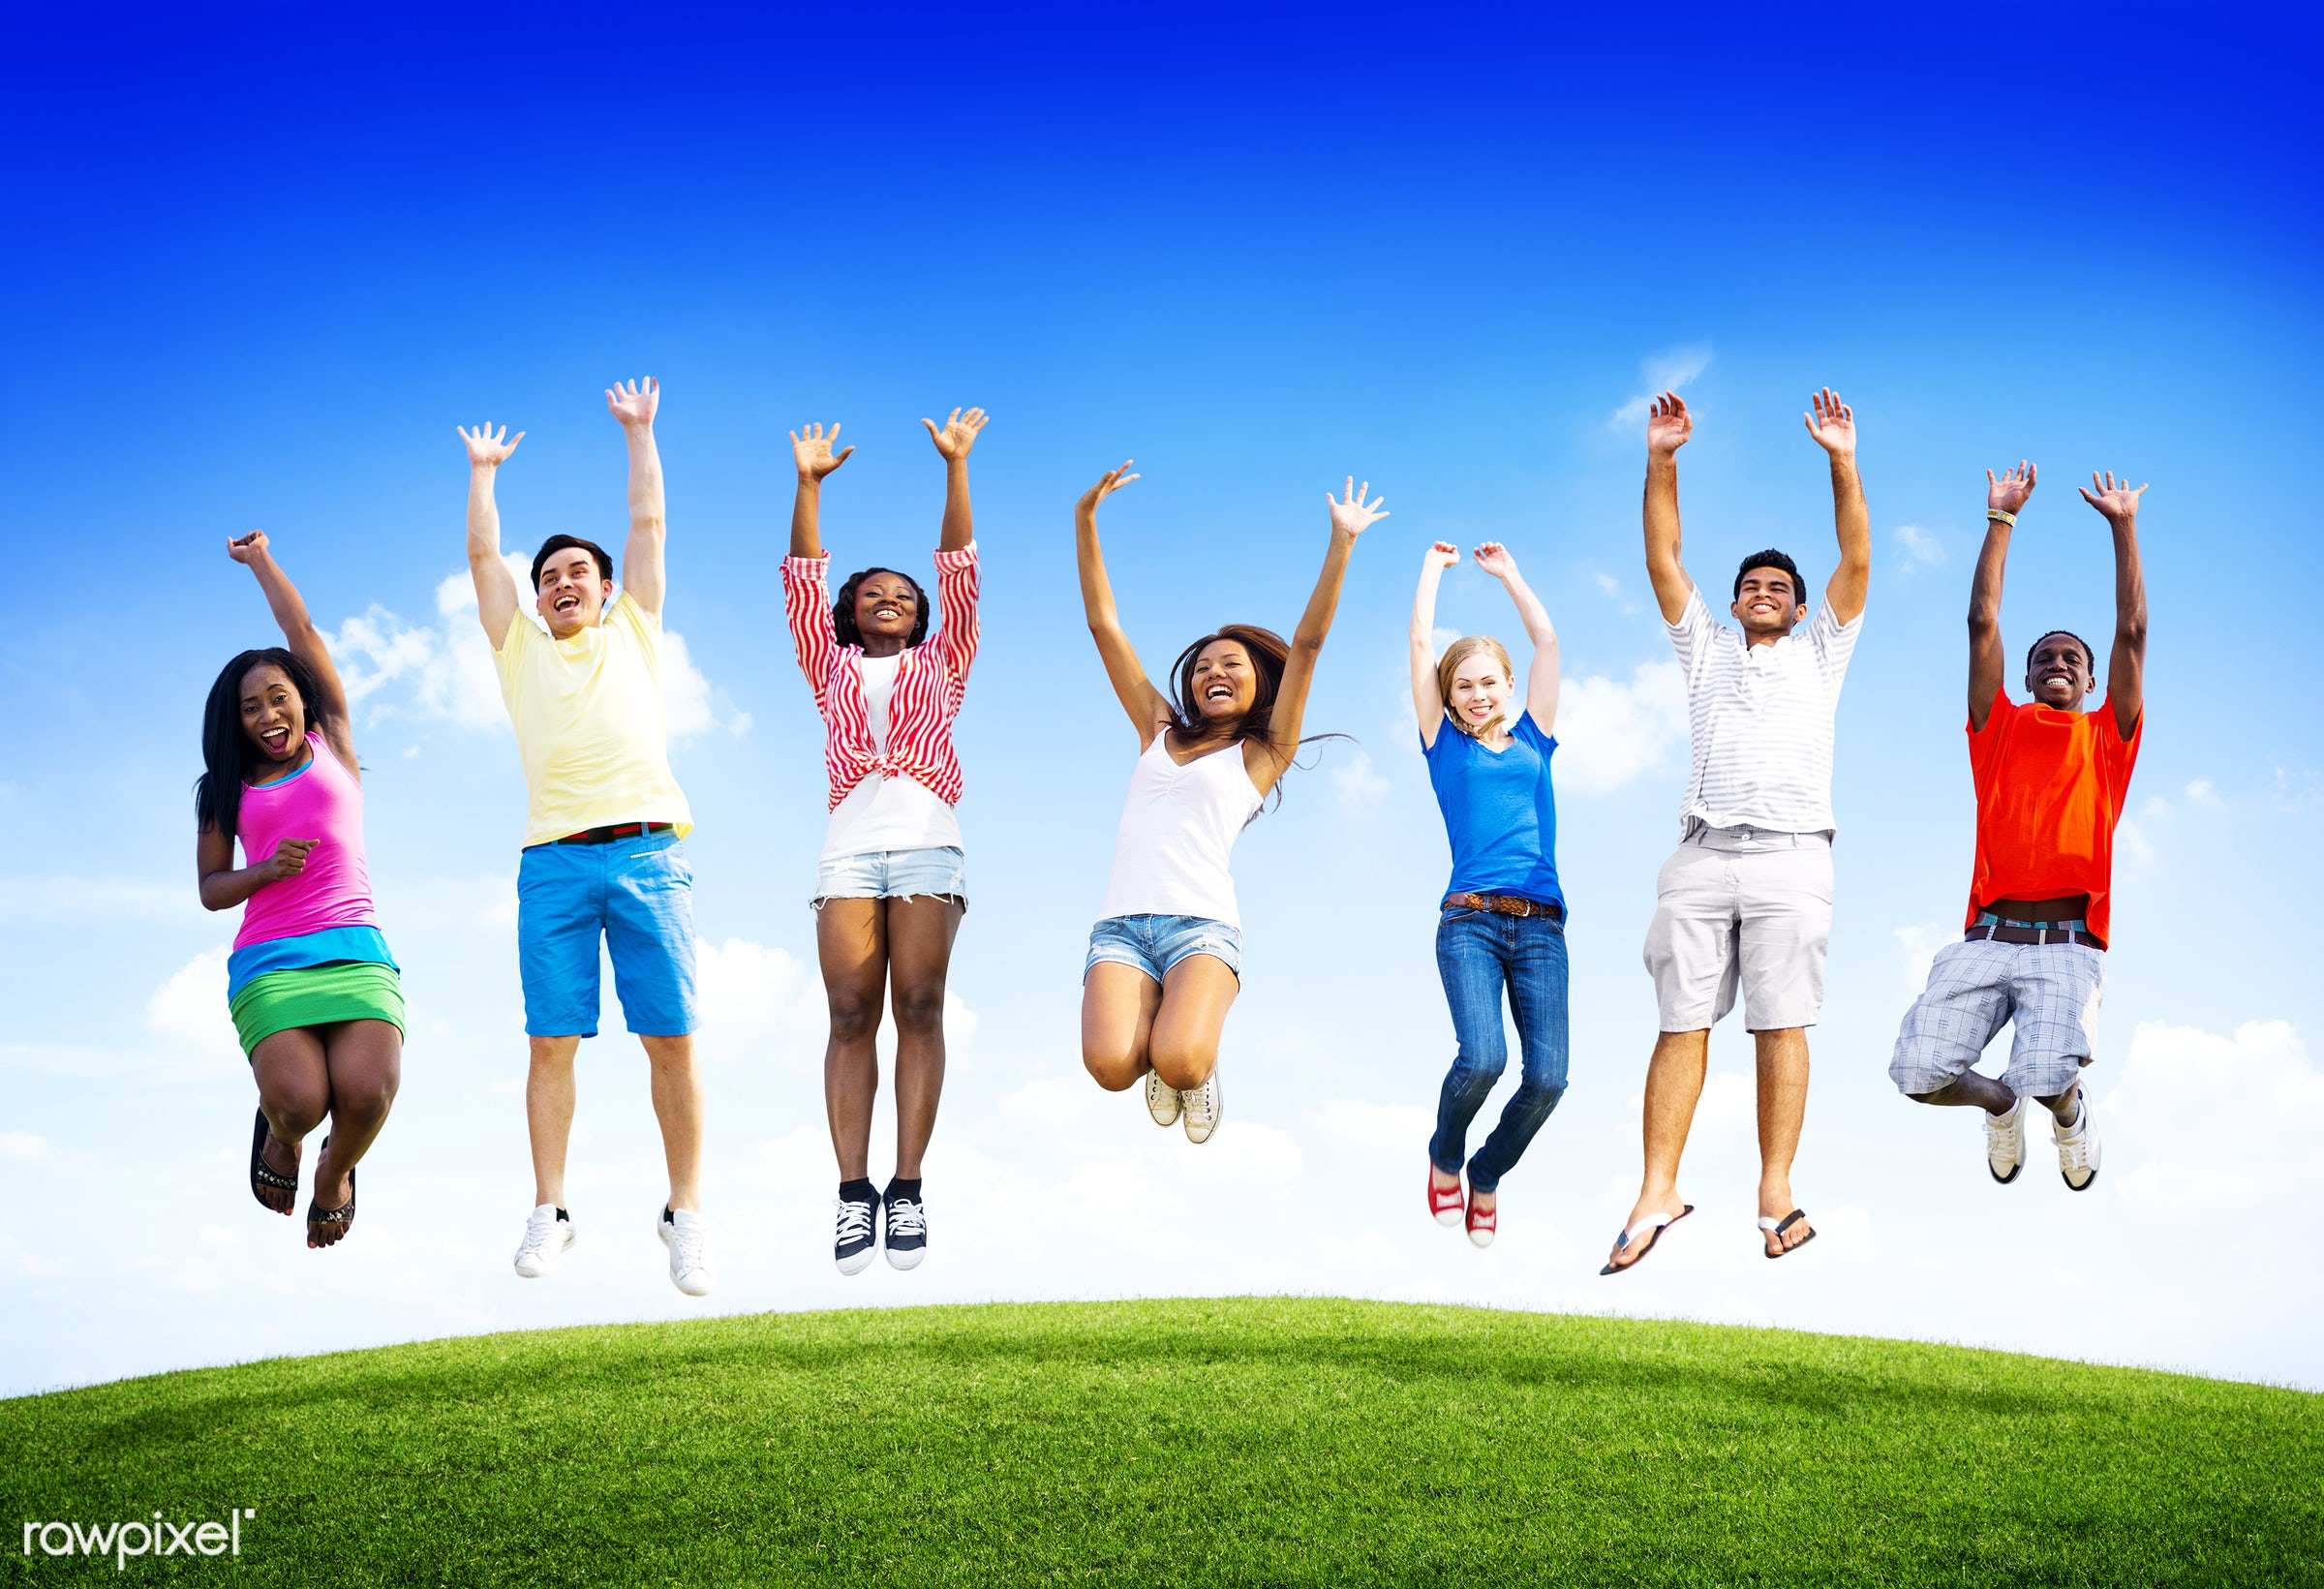 african descent, airborne, arms raised, asian ethnicity, blue sky, casual, celebration, cheerful, colorful, community,...